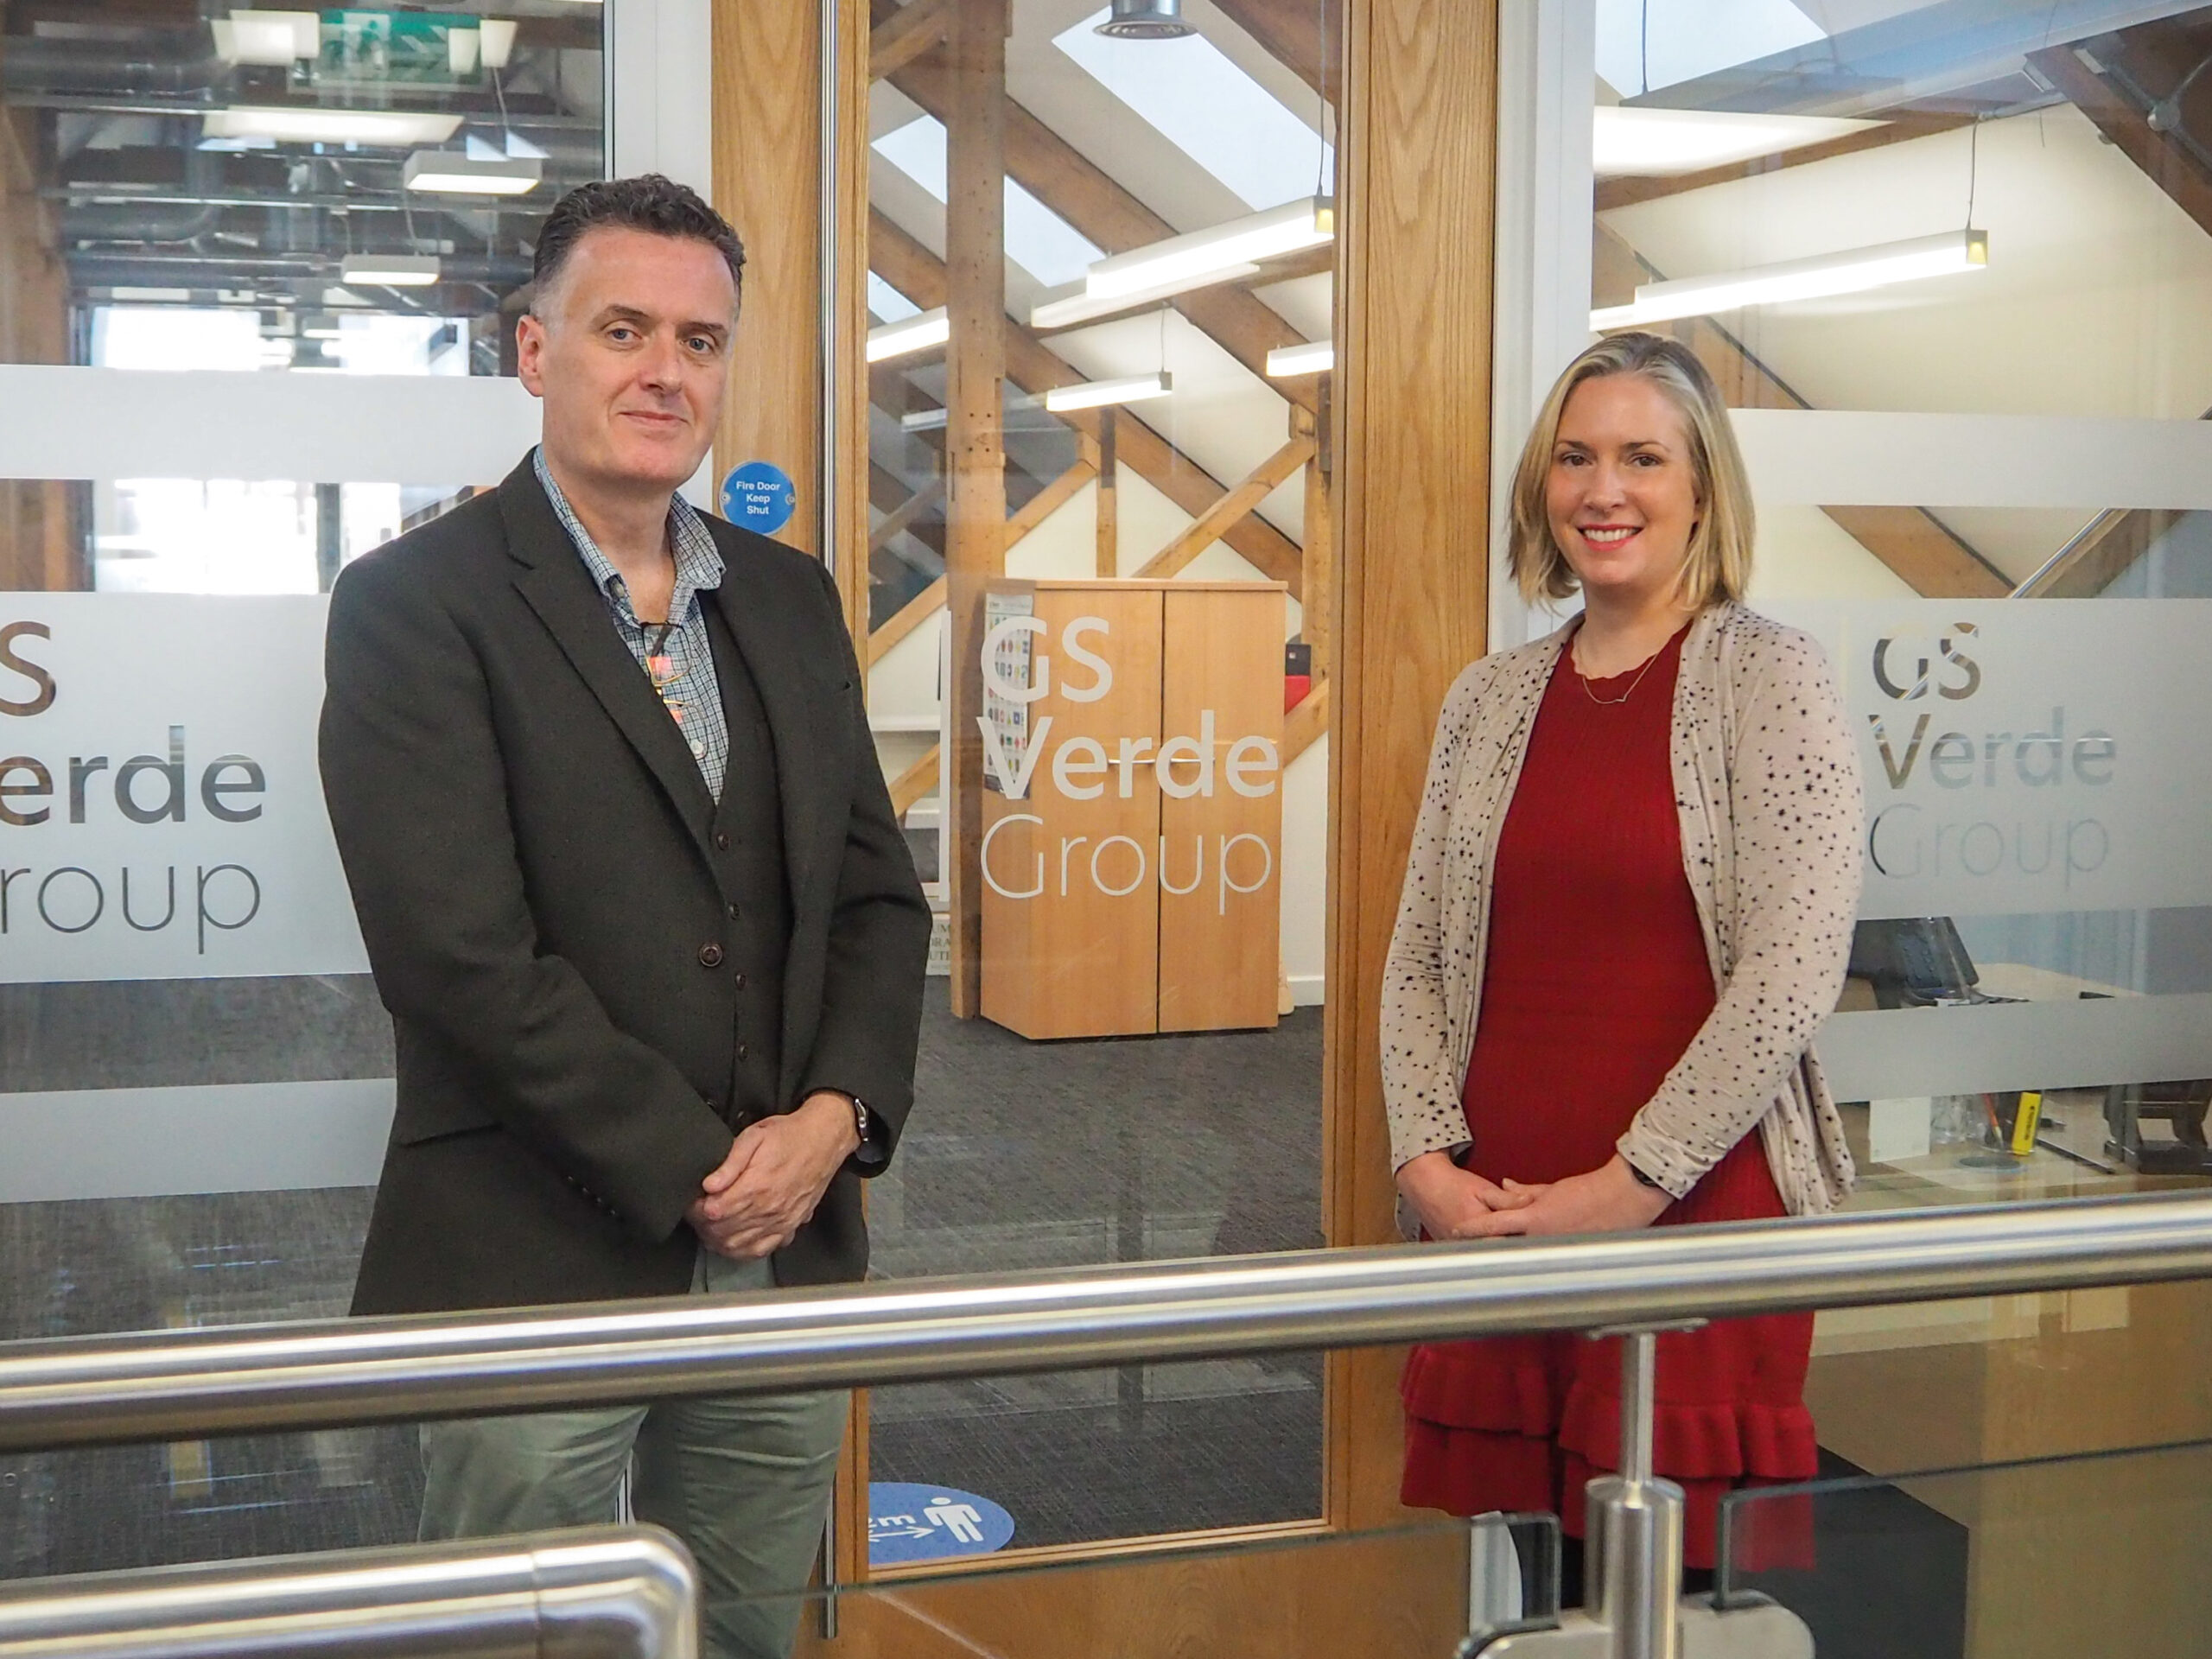 Director Appointment for GS Verde Group